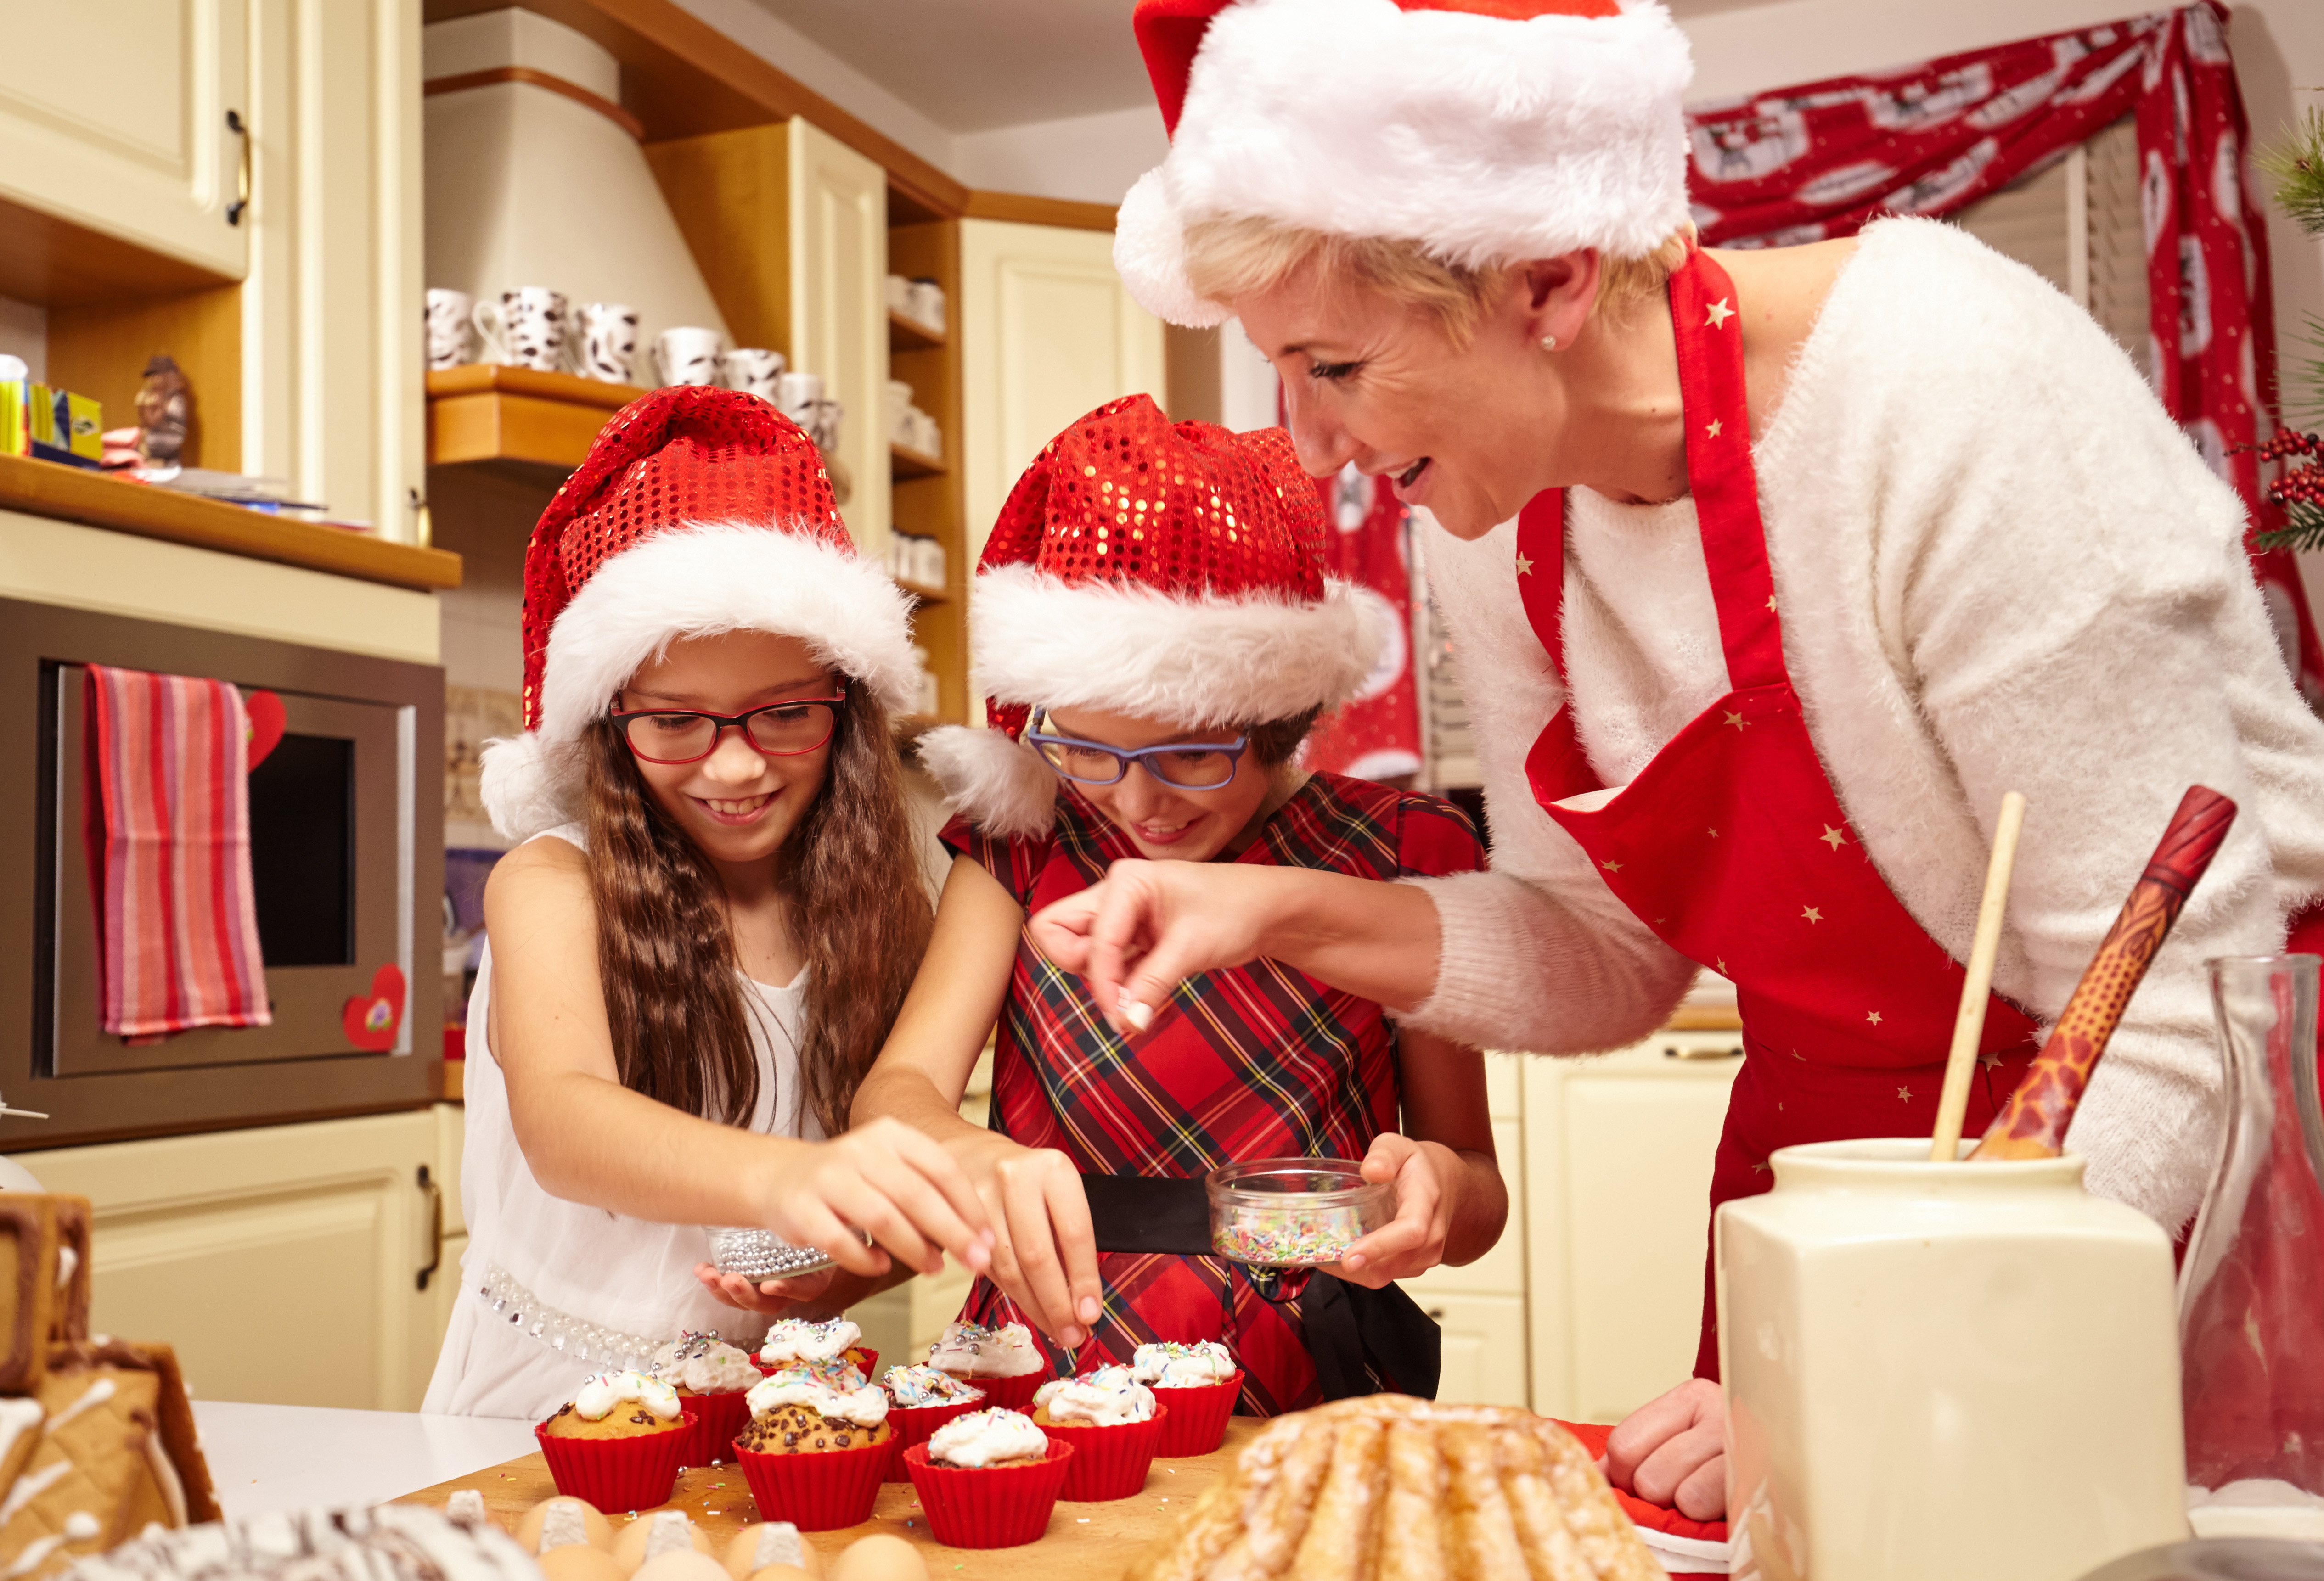 traditions- grandma and grandkids baking_347864039.jpg